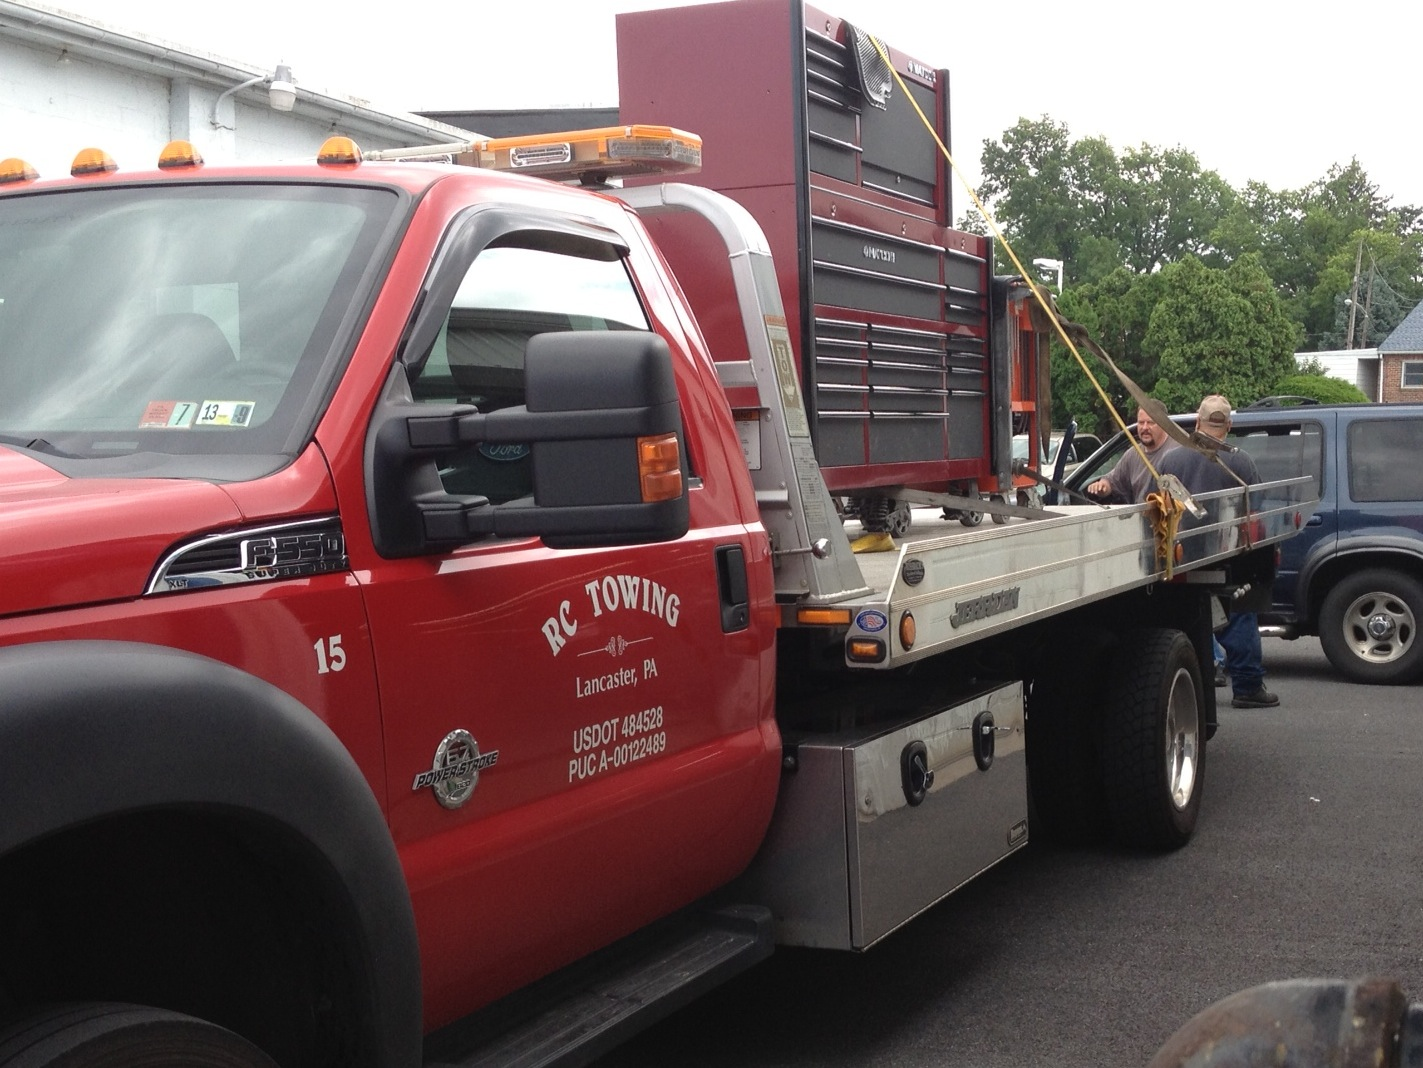 Call Patriot - St. Denis - RC Towing (717) 393-8881 to transport toolbox